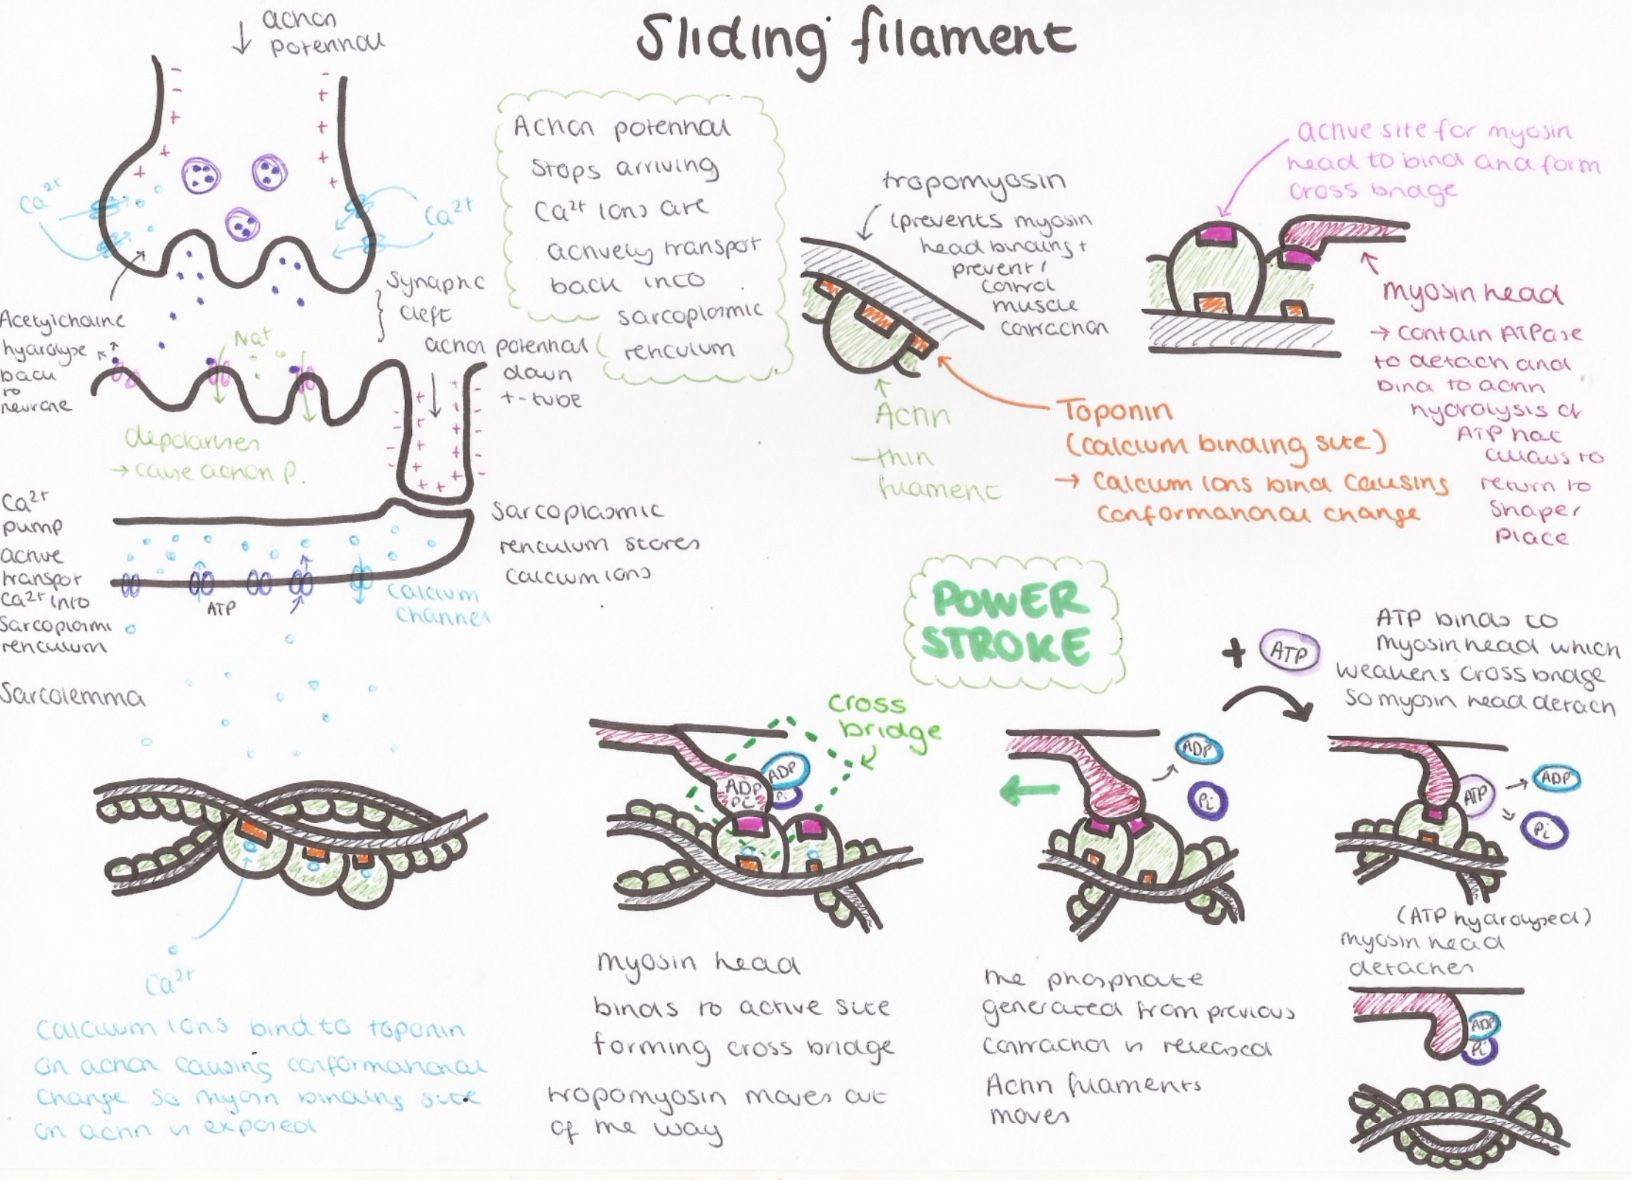 Pin by Fatos Dalokay on Biology Biology, Notes, Muscle